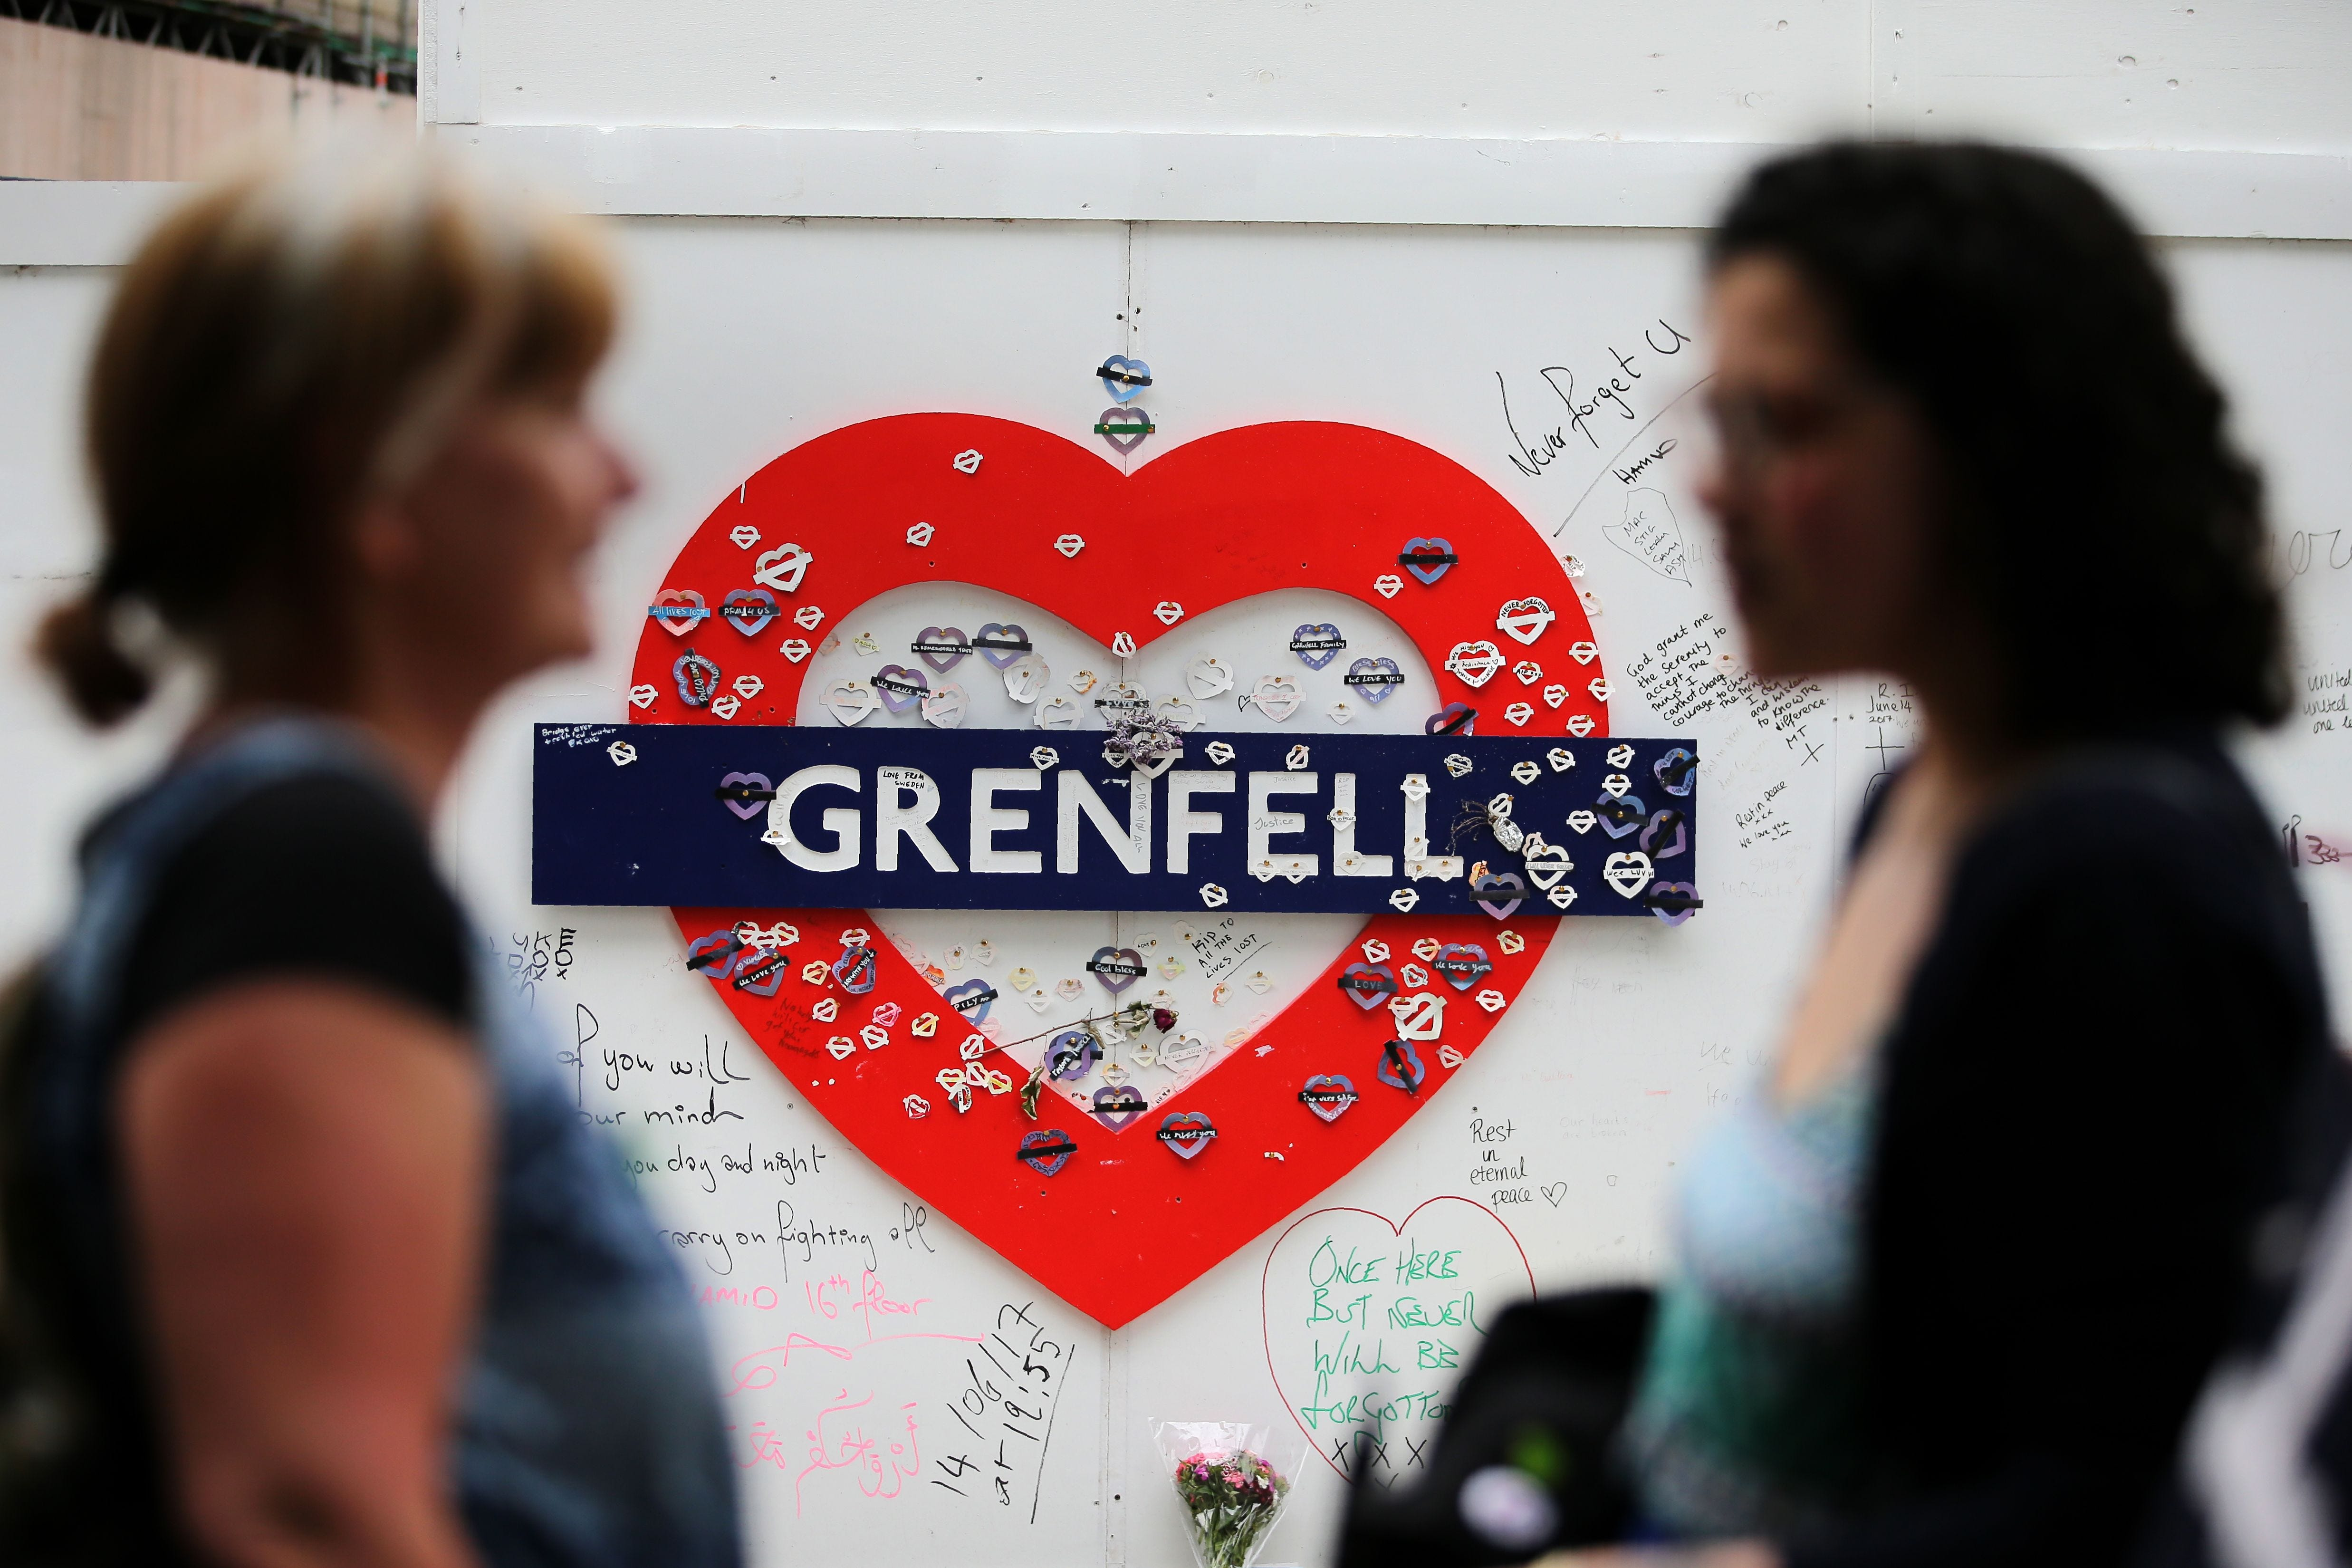 Messages of condolence for the victims of the Grenfell Tower fire are pictured on a fence near to the burned-out shell of Grenfell Tower block in west London on June 13, 2018.  Commemorations begin on June 13, 2018, to honour the 71 people who died wh